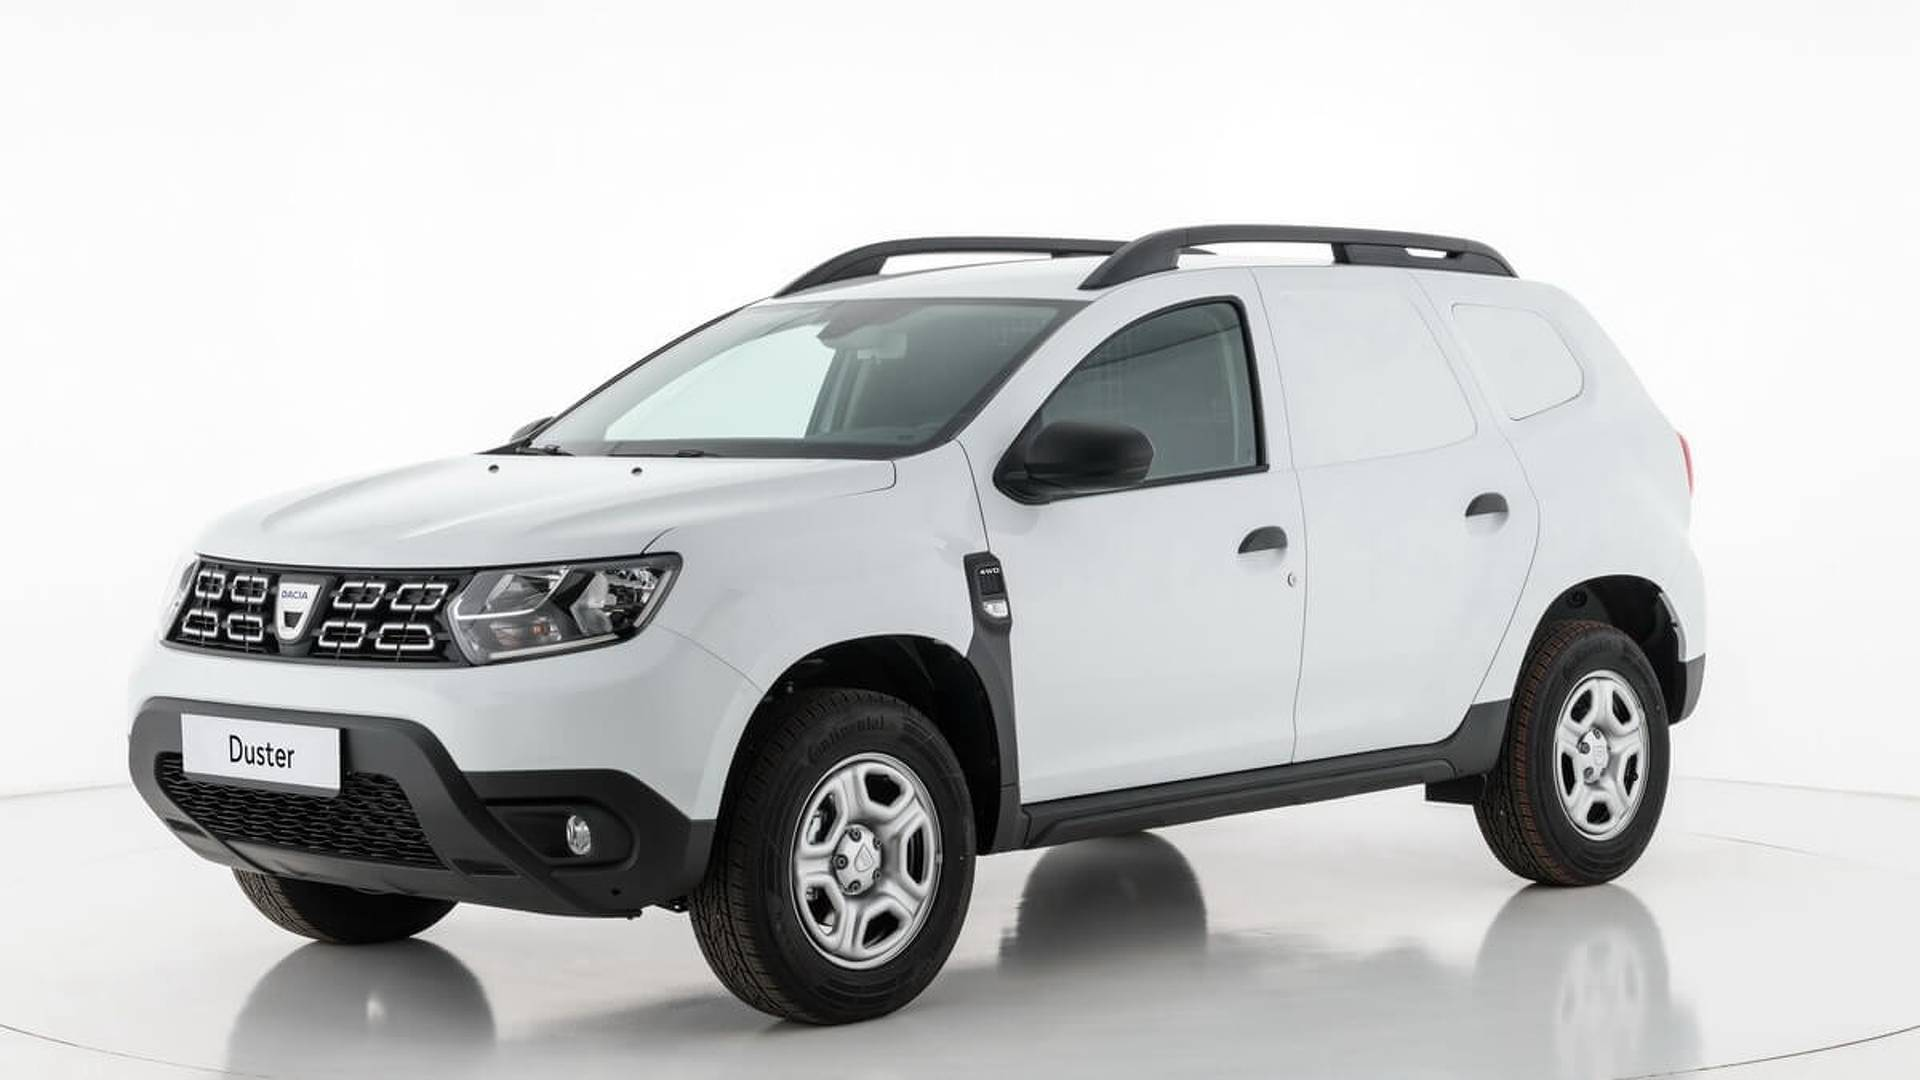 2018 dacia duster fiskal van conversion priced at eur. Black Bedroom Furniture Sets. Home Design Ideas